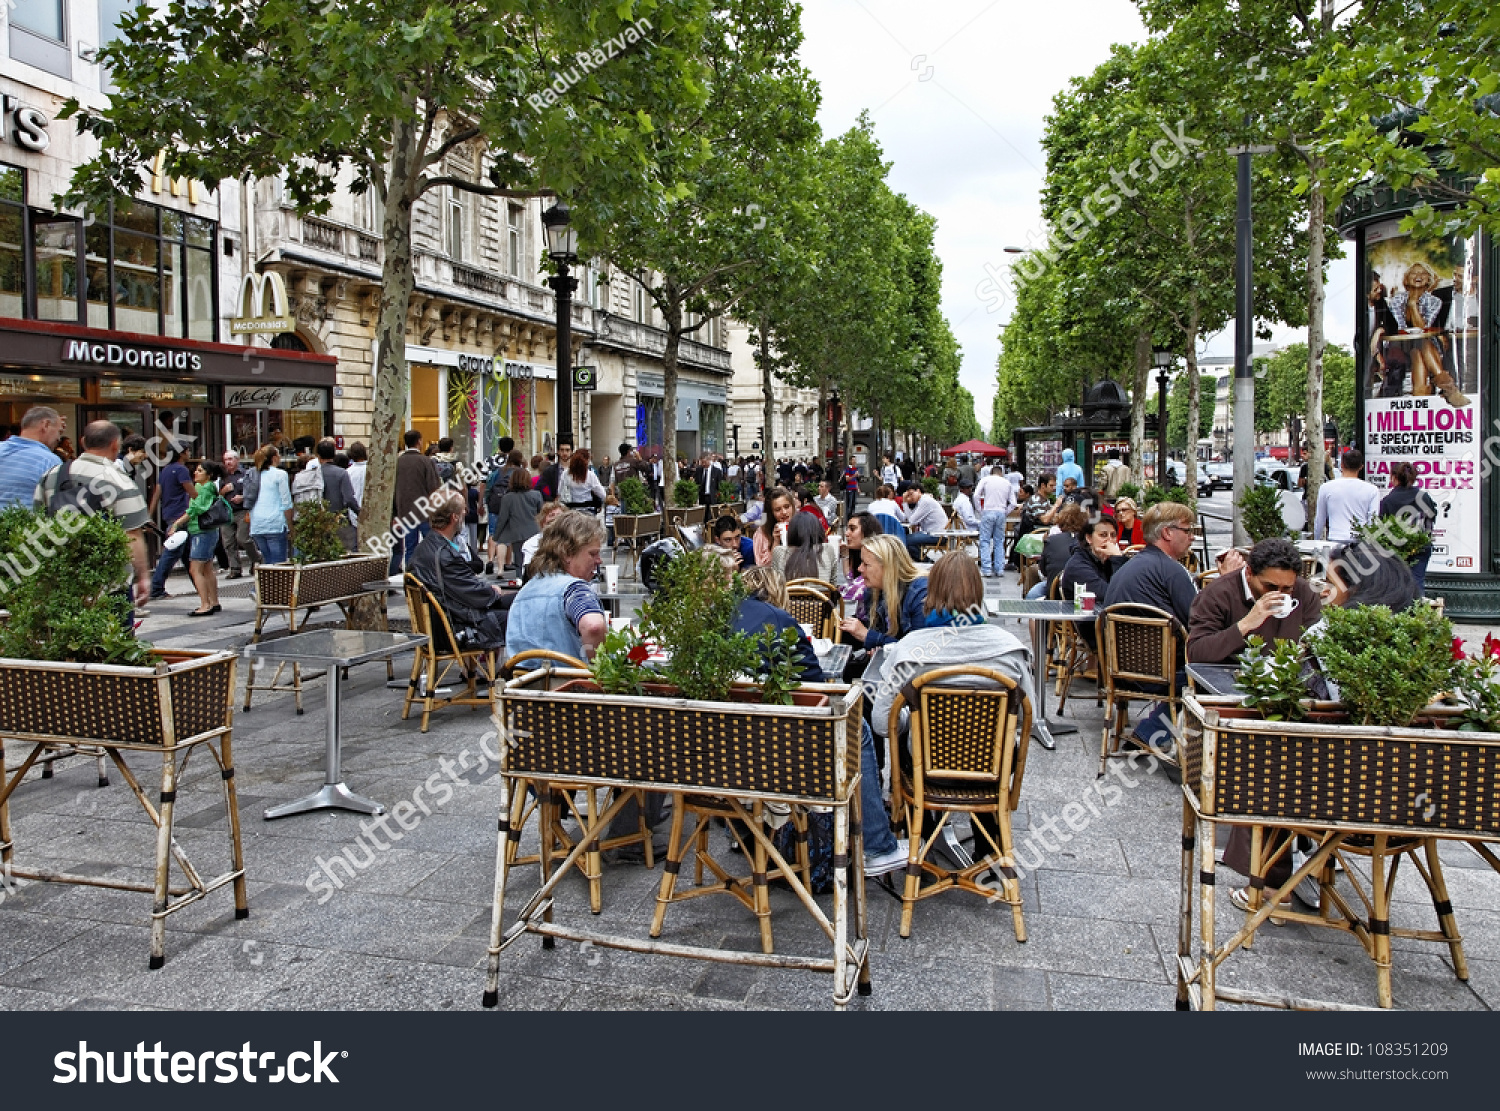 Crowded restaurant table - Paris Jun 22 Crowded Terrace On The Avenue Des Champs Elysees During A